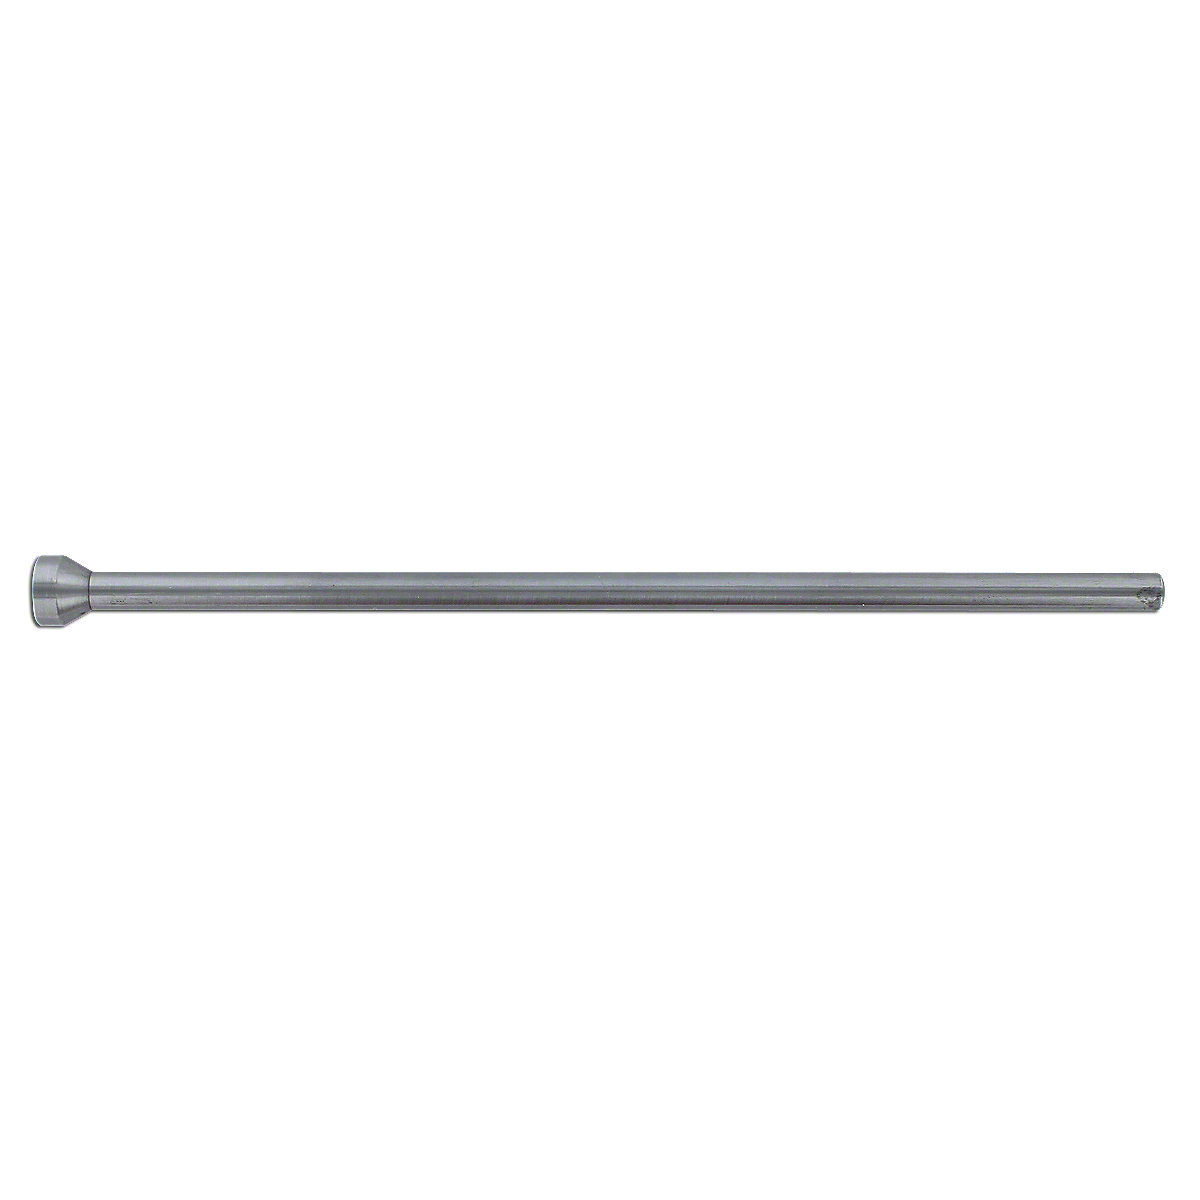 MFS2420 Pushrod (sold individually)